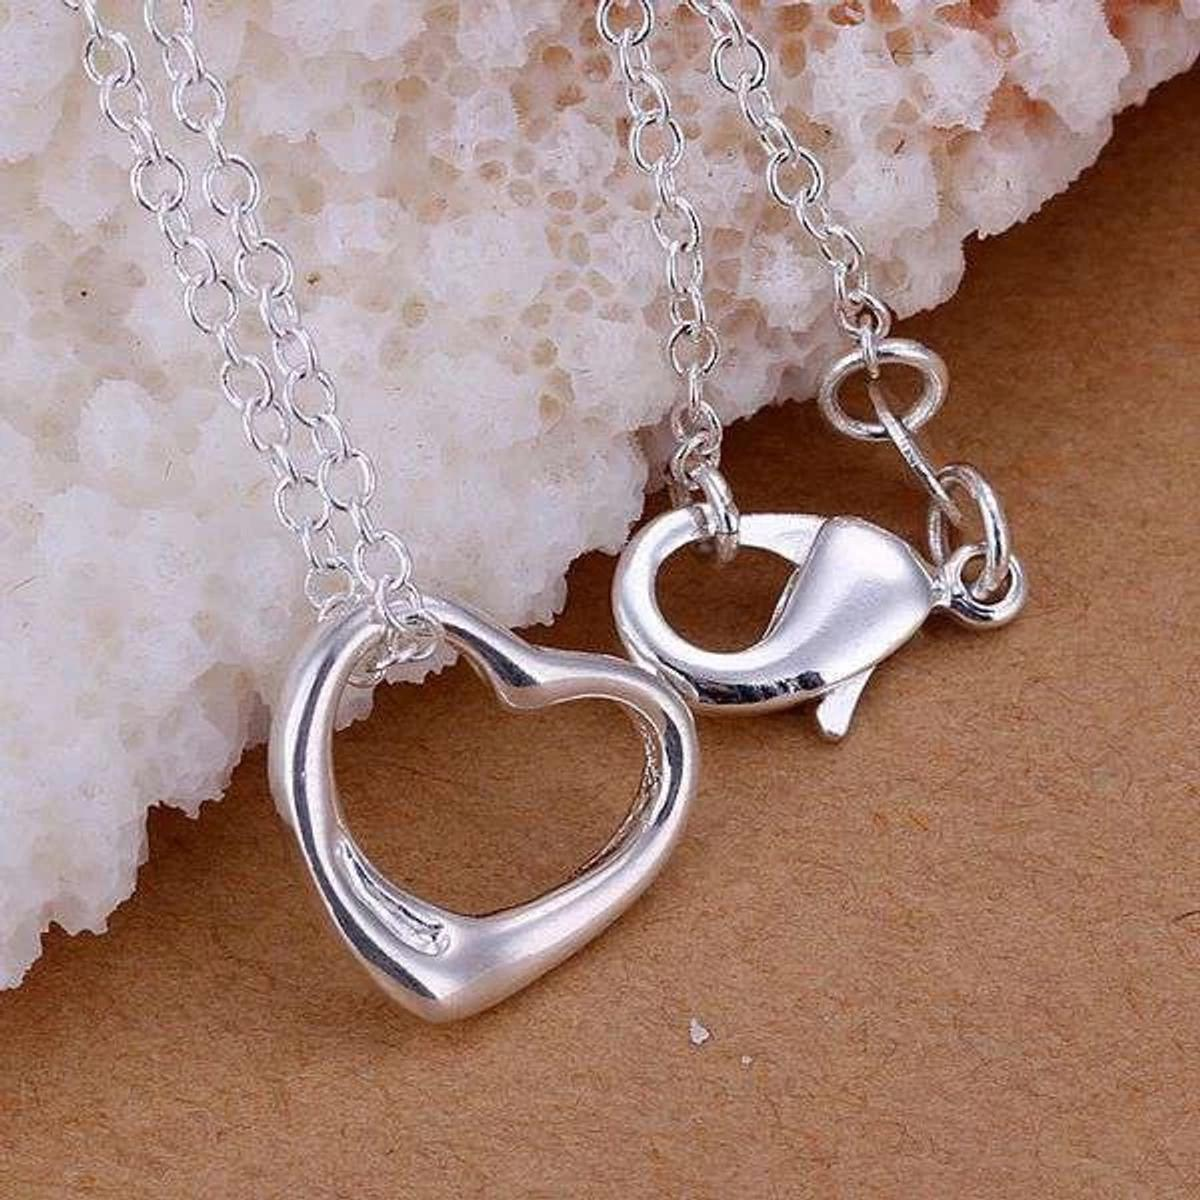 Silver Necklace In B24 Birmingham For 2 99 For Sale Shpock